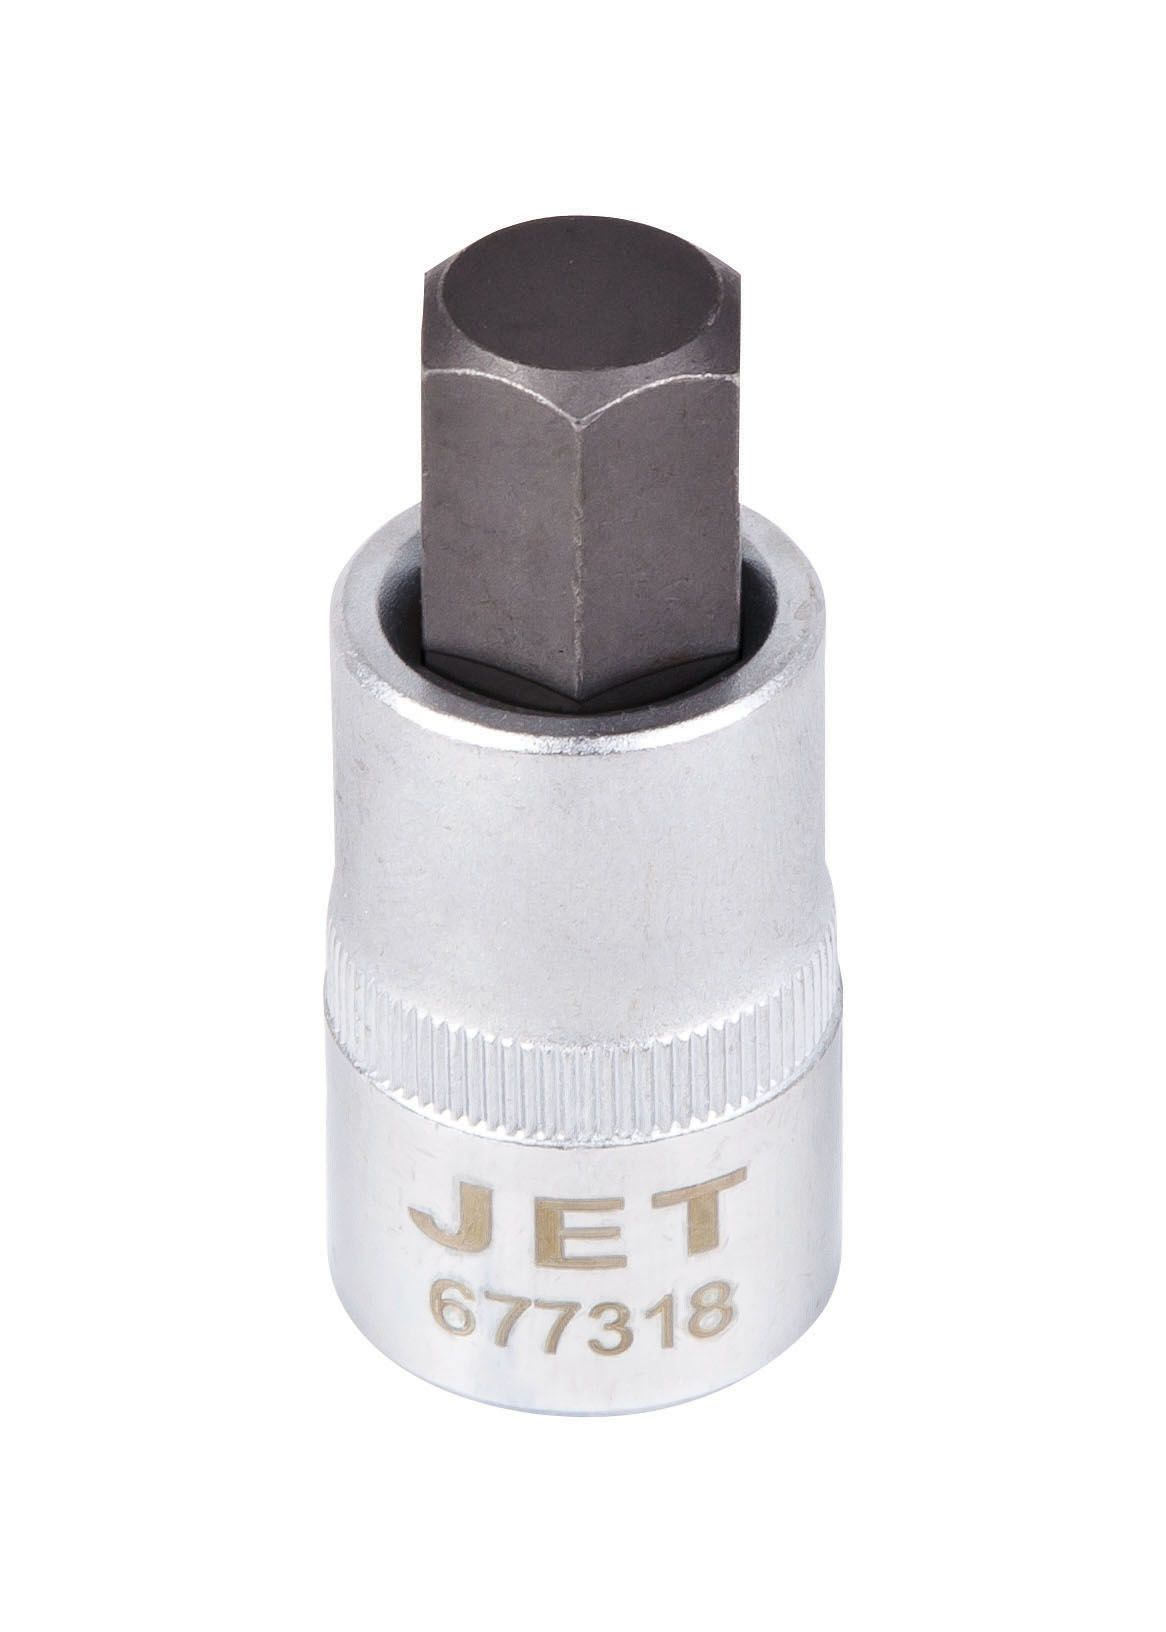 Jet 677318 Douille hexagonale 9/16